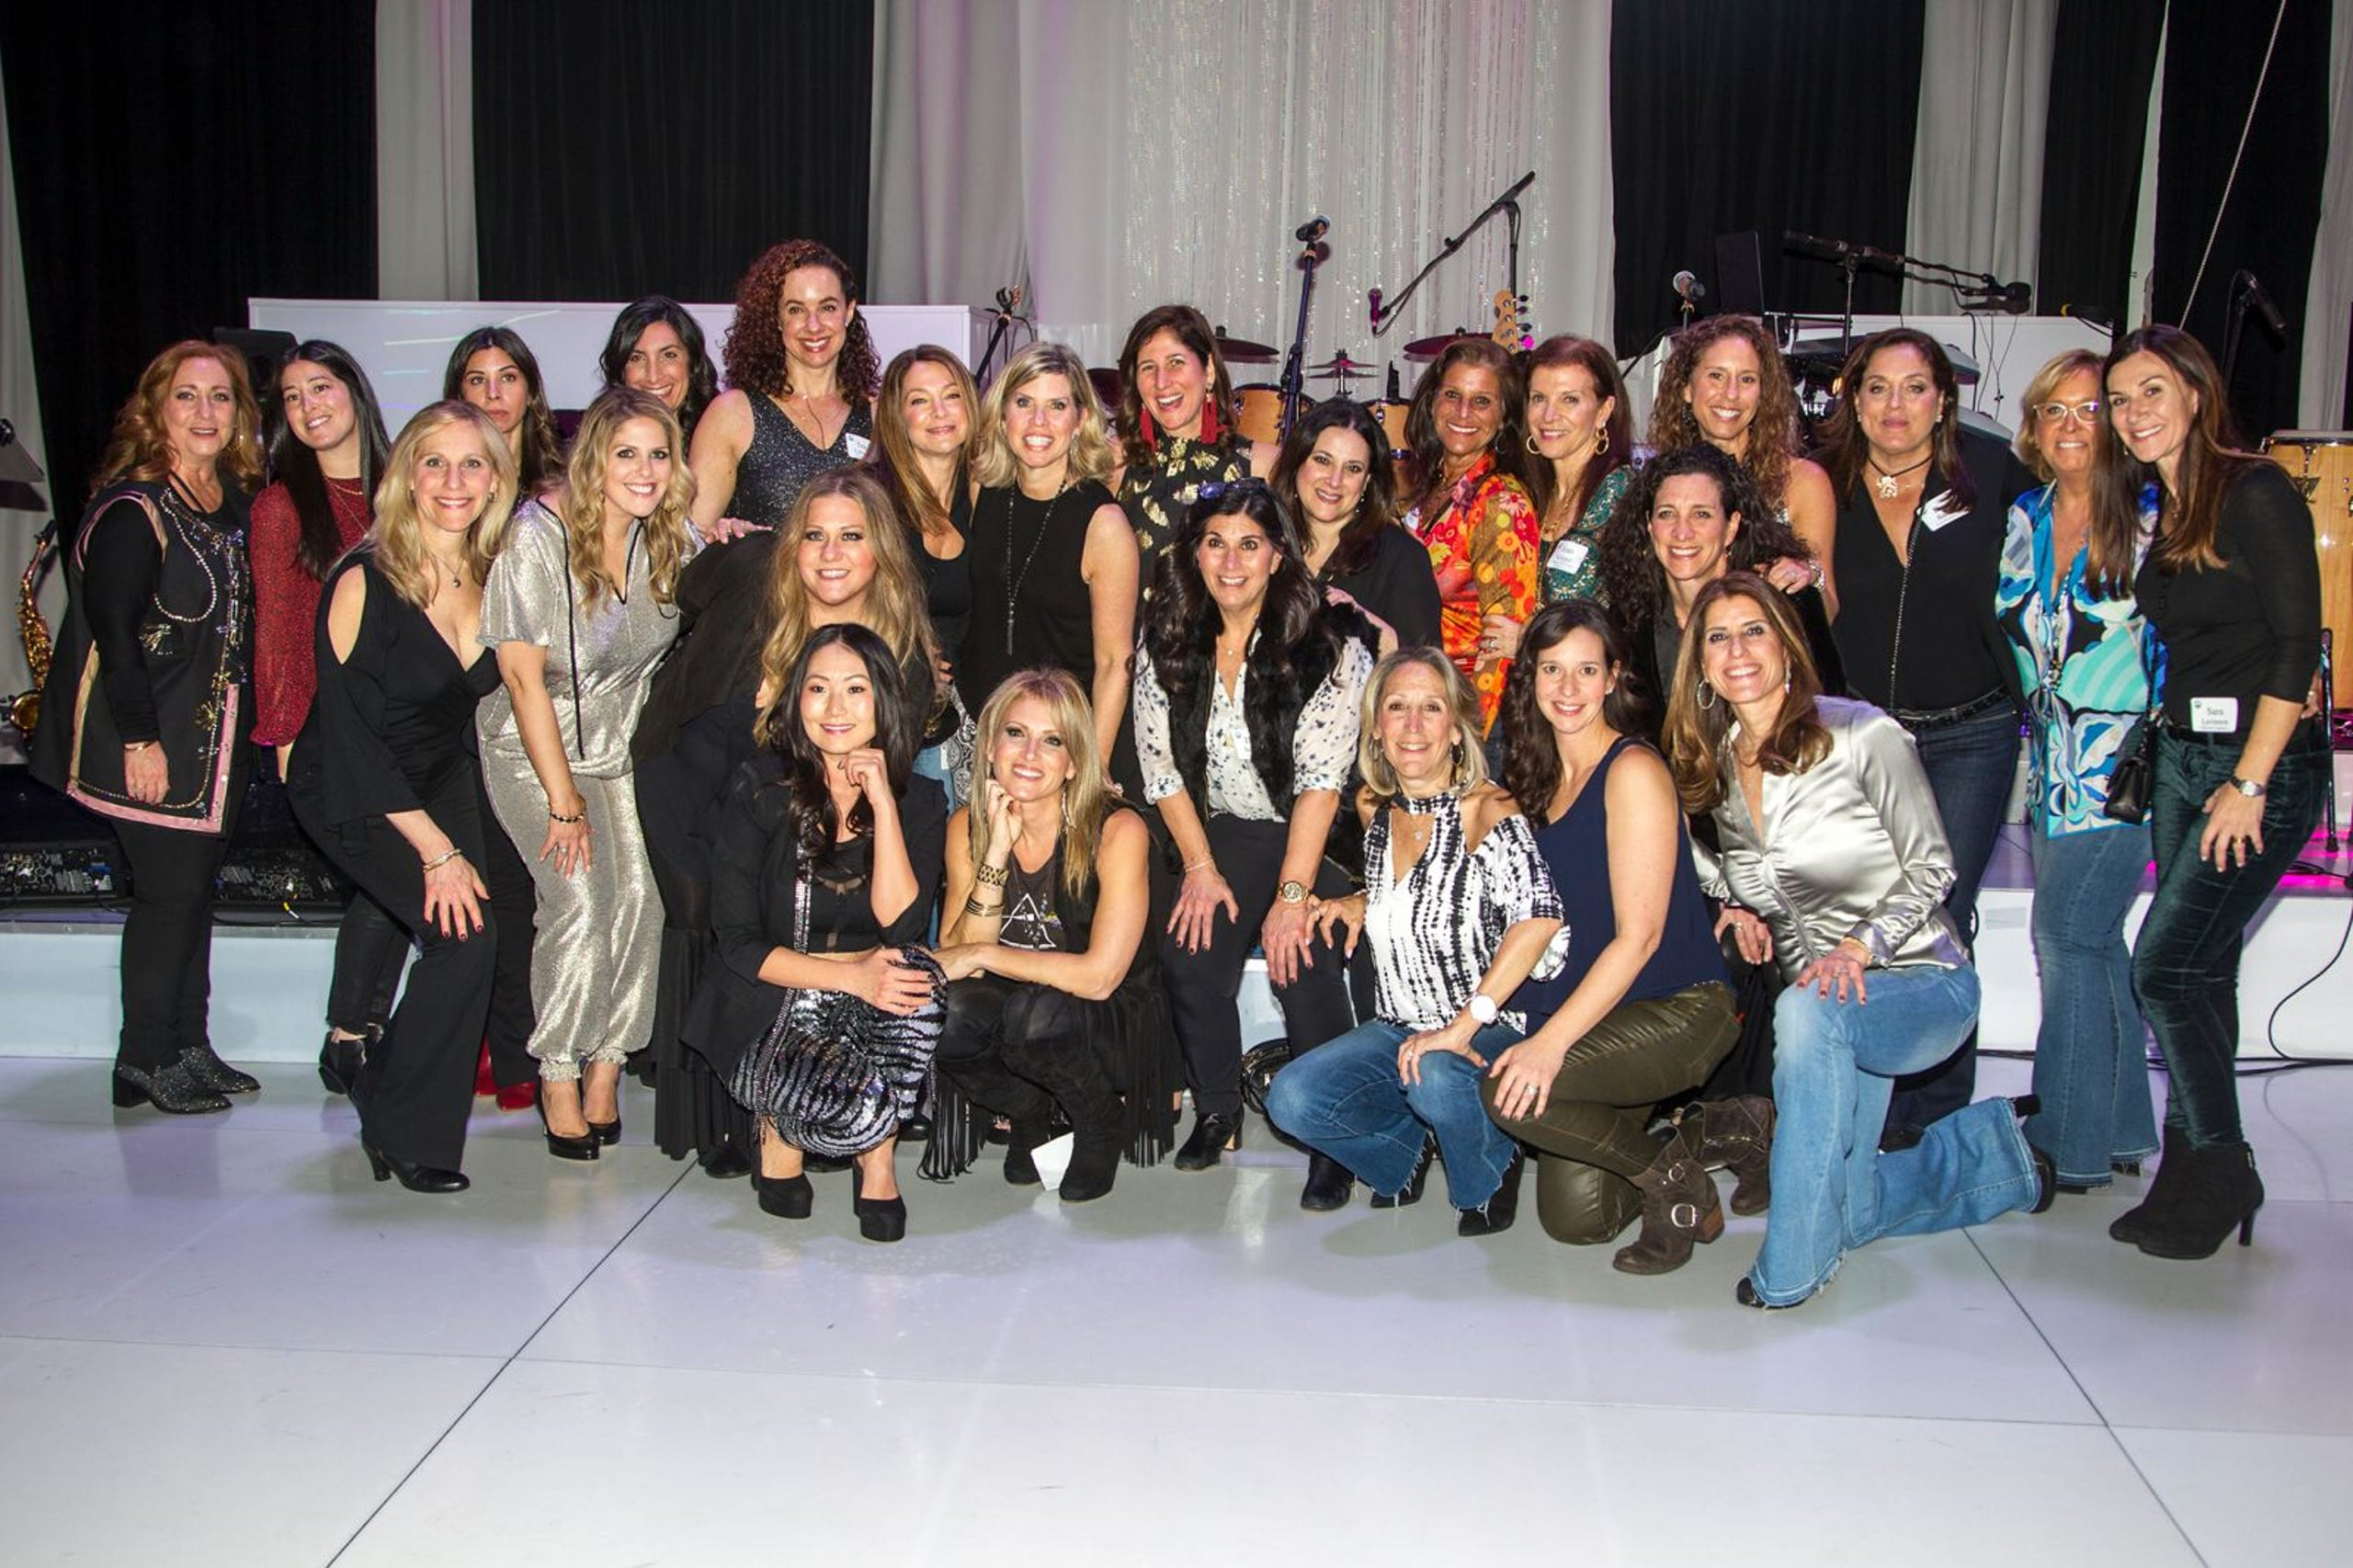 228984453a Jewish Federation of Northern New Jersey held its first Girl's Night Out  dance party at Space